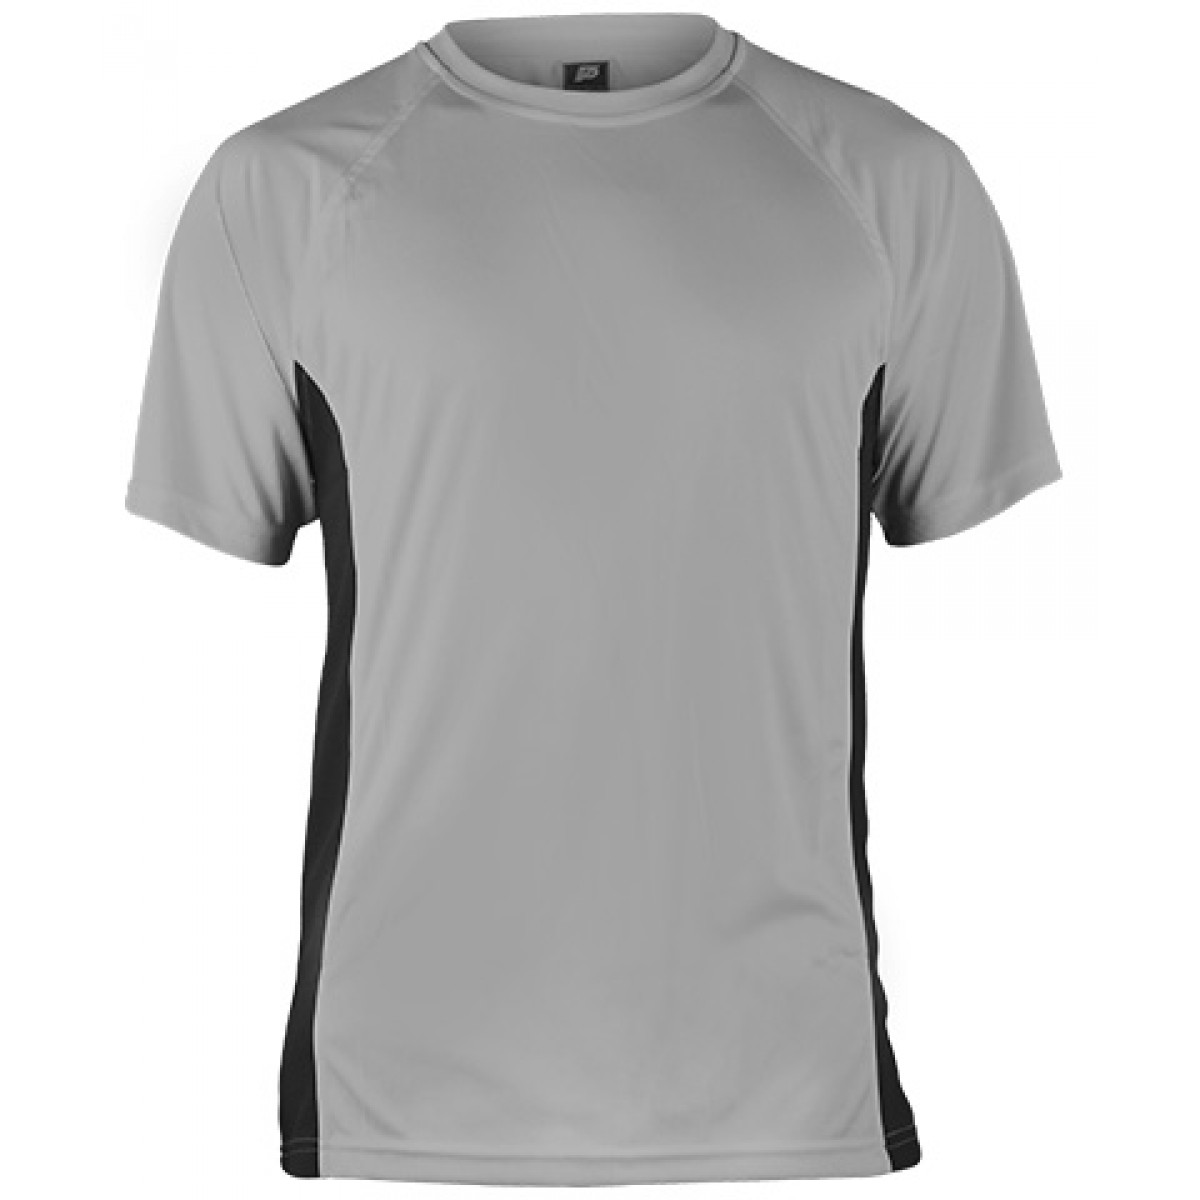 Short Sleeves Performance With Side Insert-Gray/Black-M